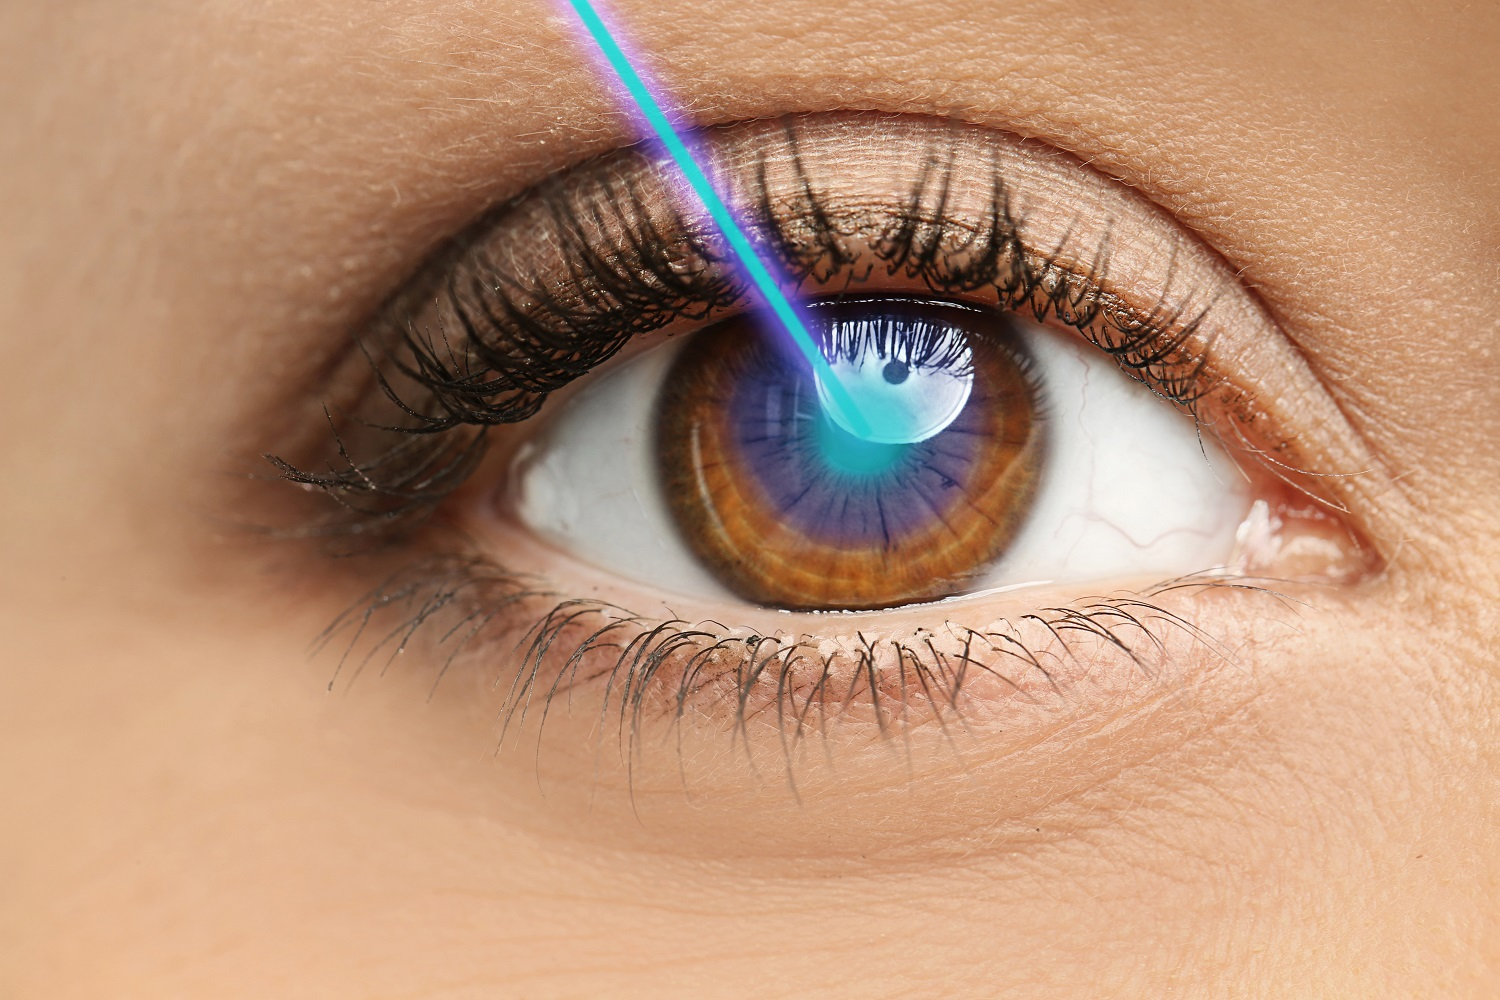 Laser and young woman, closeup of eye